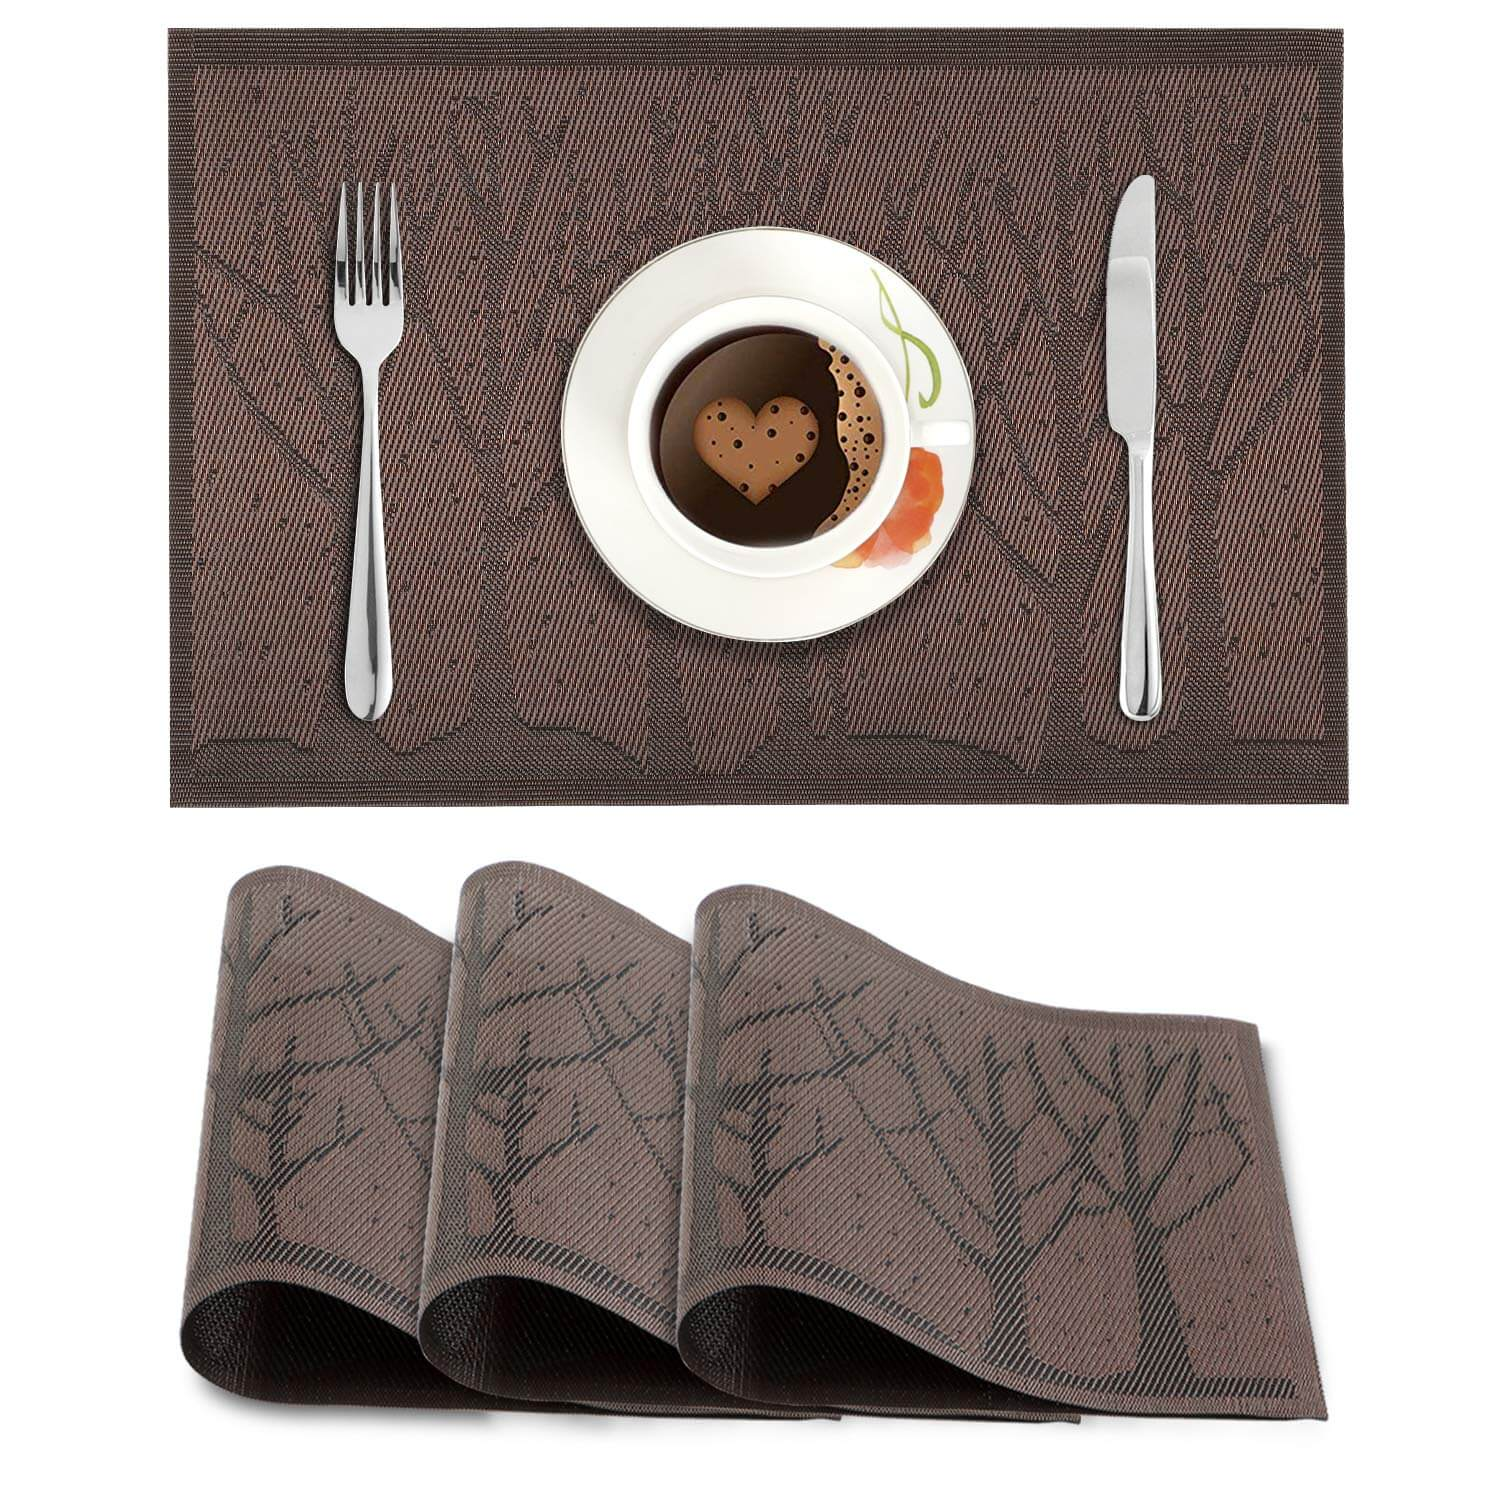 Brown Trees. AND005753. Size- 45x30 cm